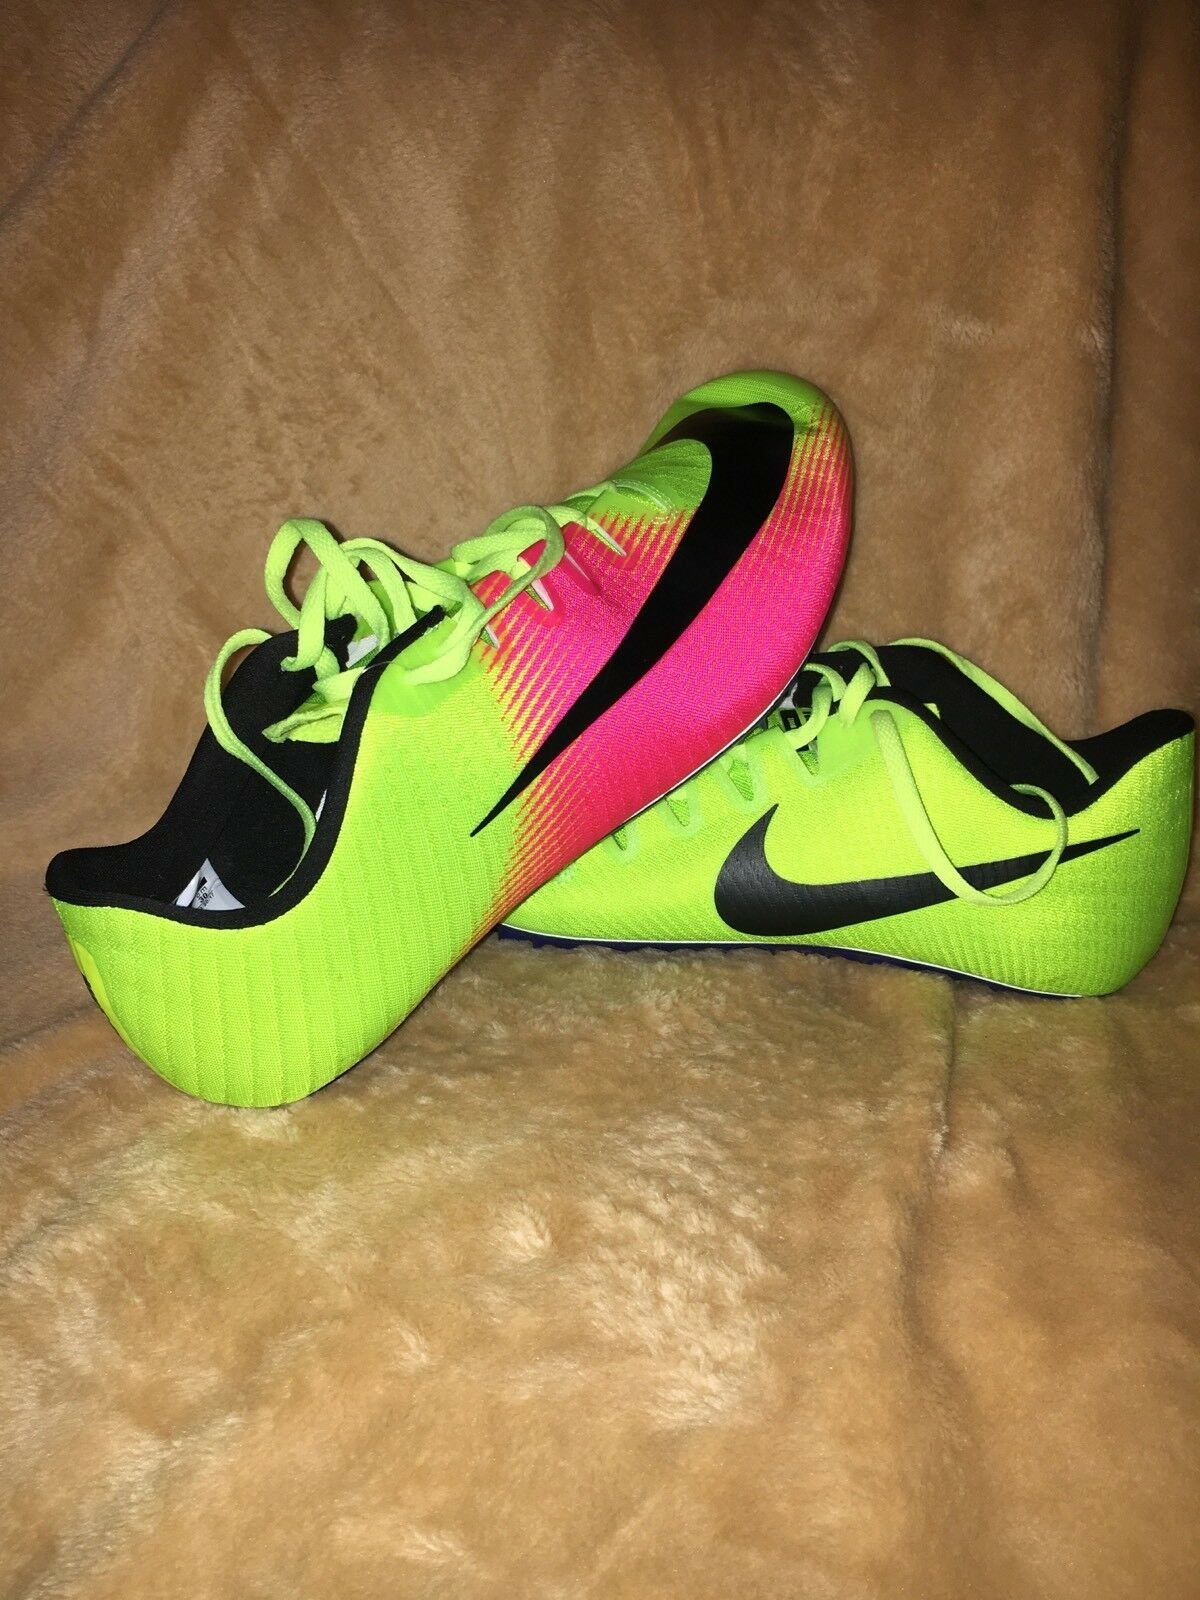 New Mens Nike Zoom Ja Fly 3 OC RIO Spikes 882032-999 Running Shoes Volt Pink 882032-999 Spikes 08099d